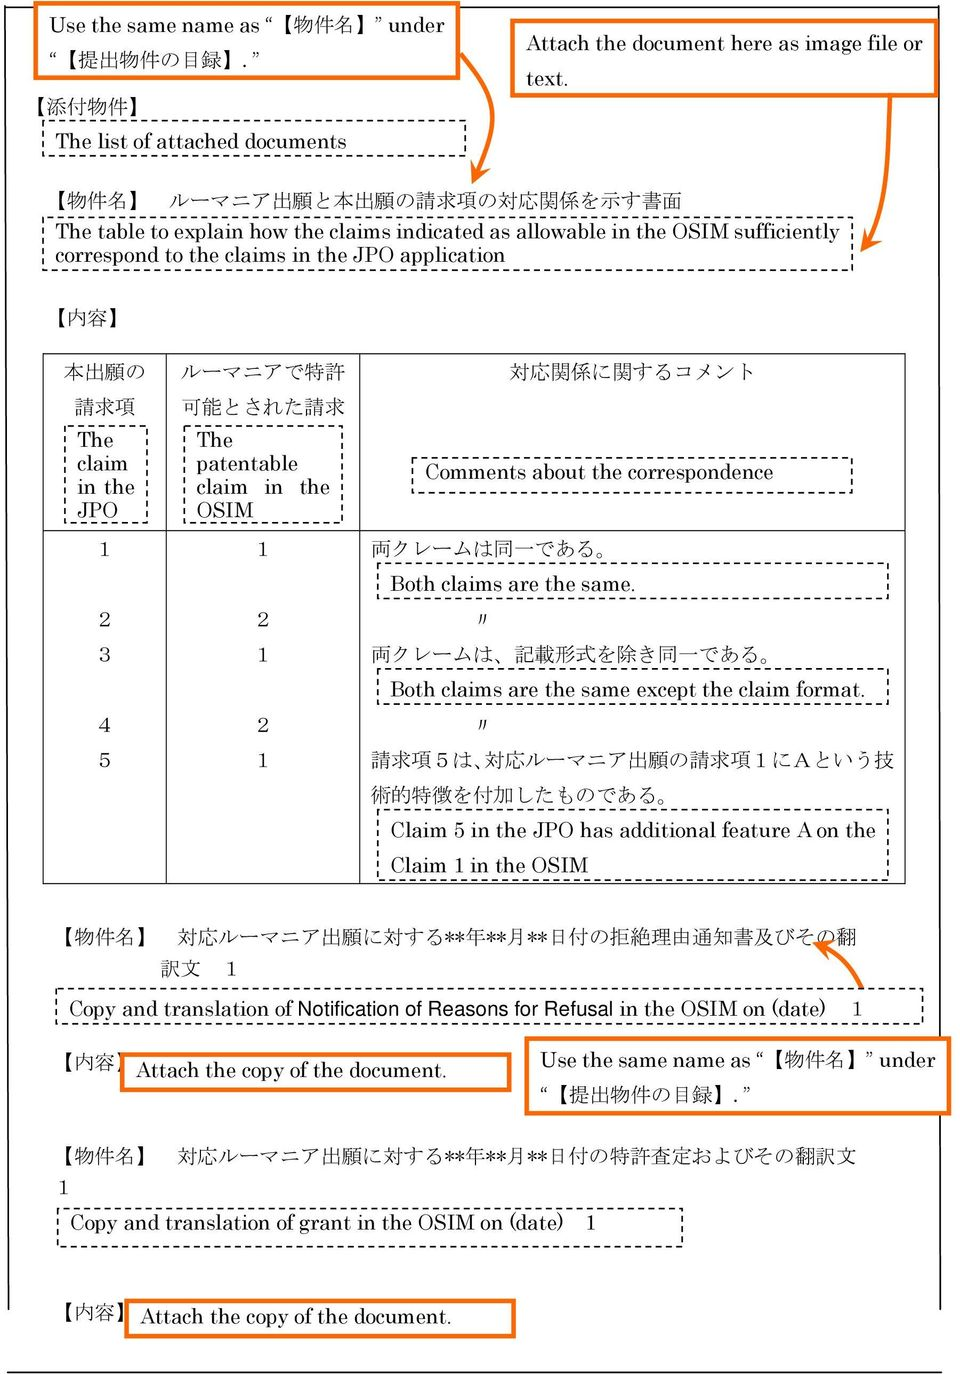 The claim in the JPO 3 4 5 ルーマニアで 特 許 可 能 とされた 請 求 The 項 patentable claim in the OSIM 対 応 関 係 に 関 するコメント Comments about the correspondence 両 クレームは 同 一 である Both claims are the same.